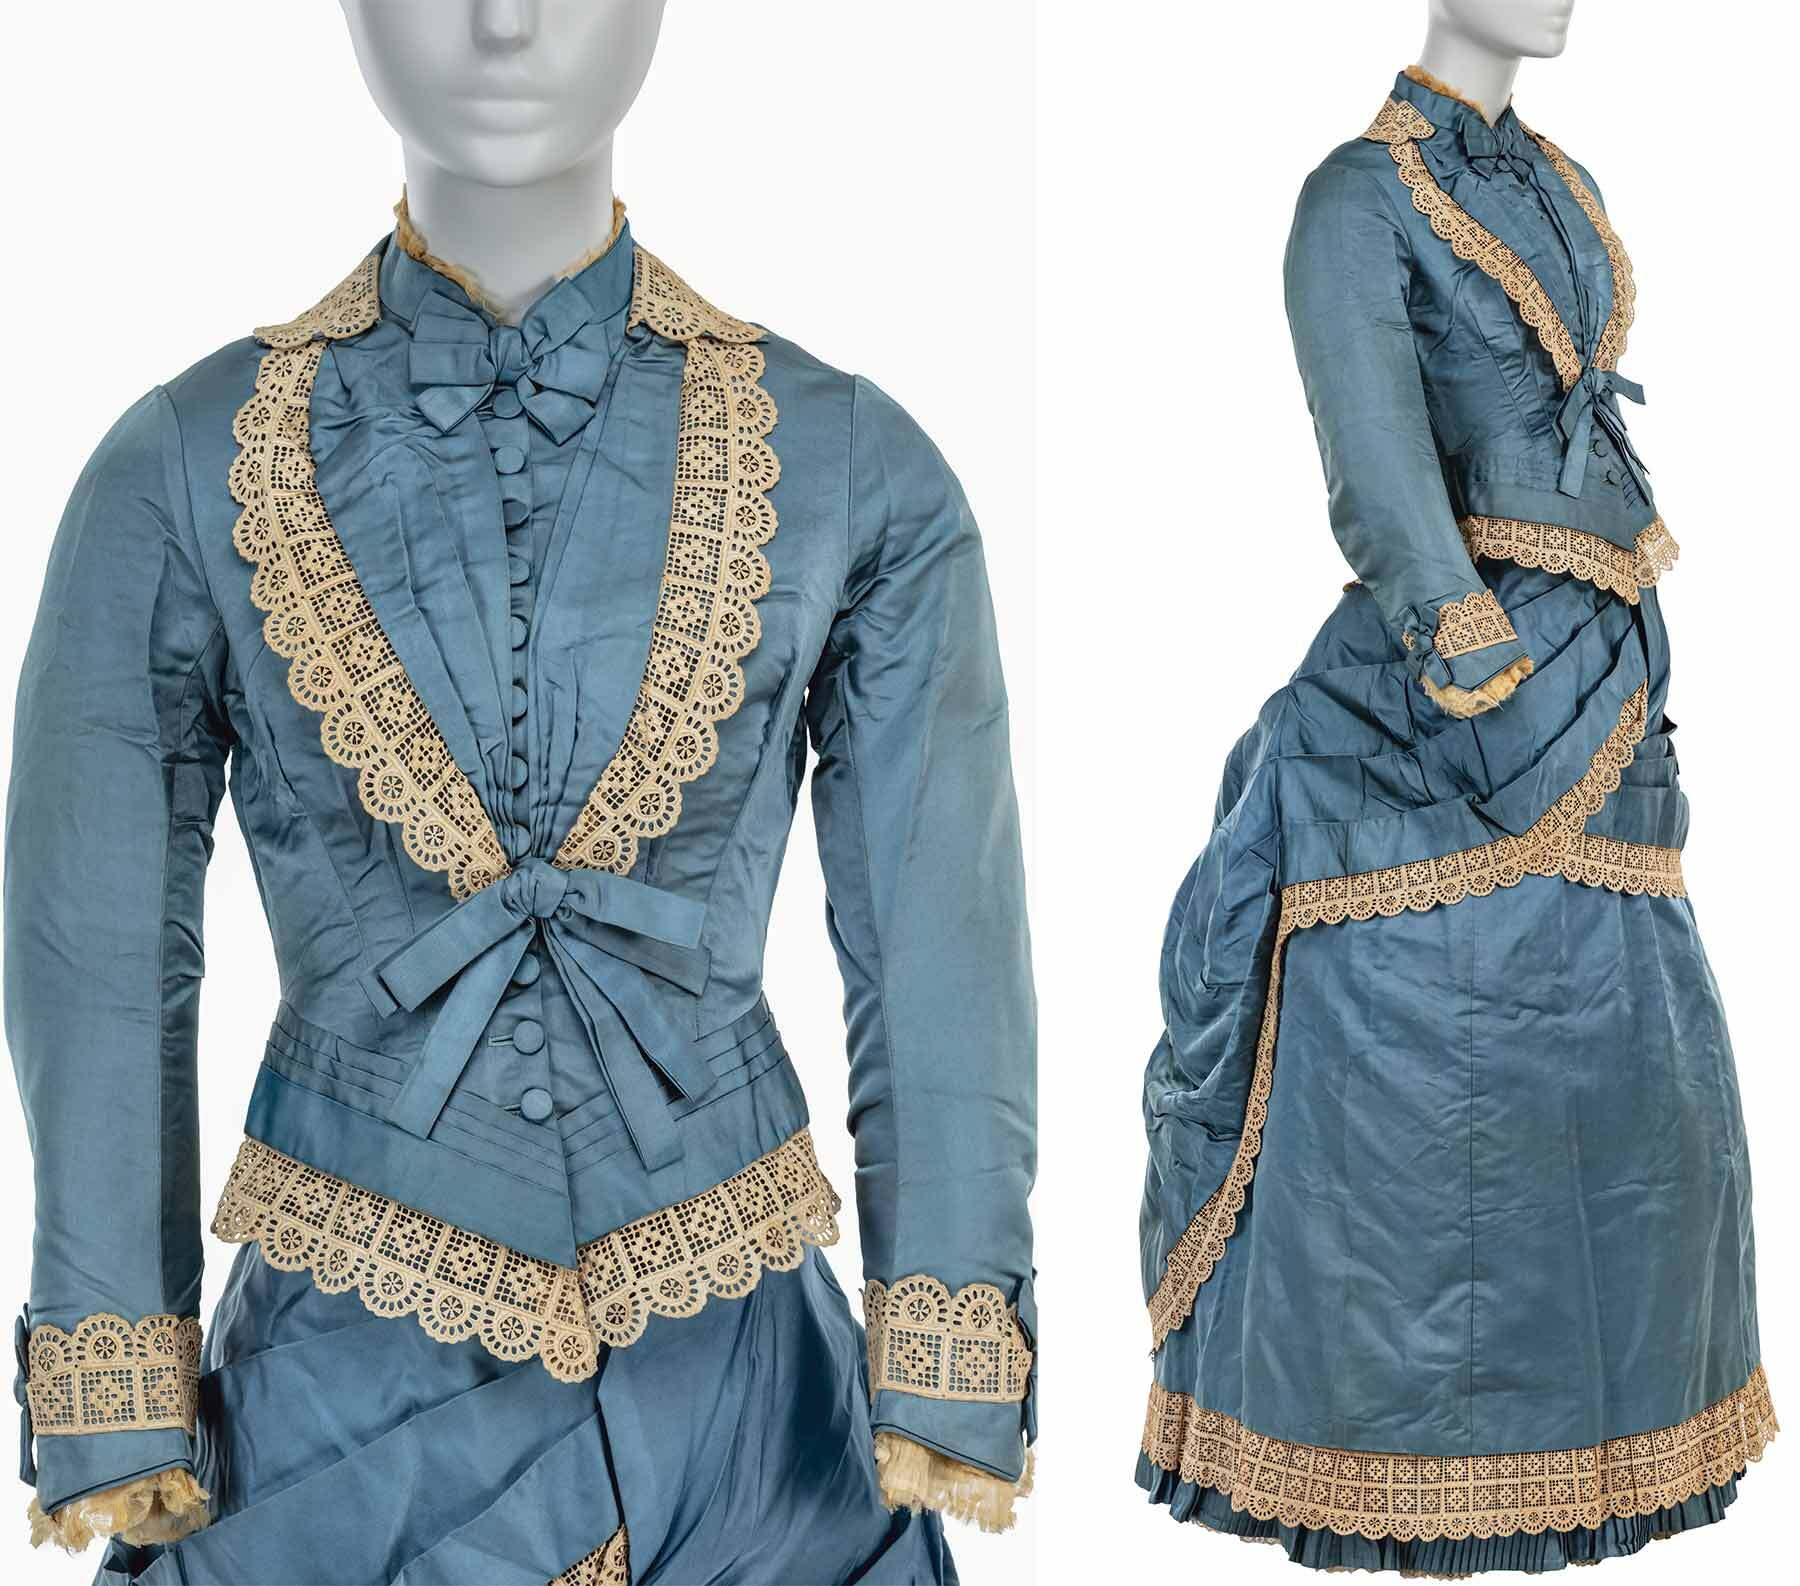 Blue dress made of silk with cotton lace neck and cuffs, made by Maria Theresa Baldwin Hollander